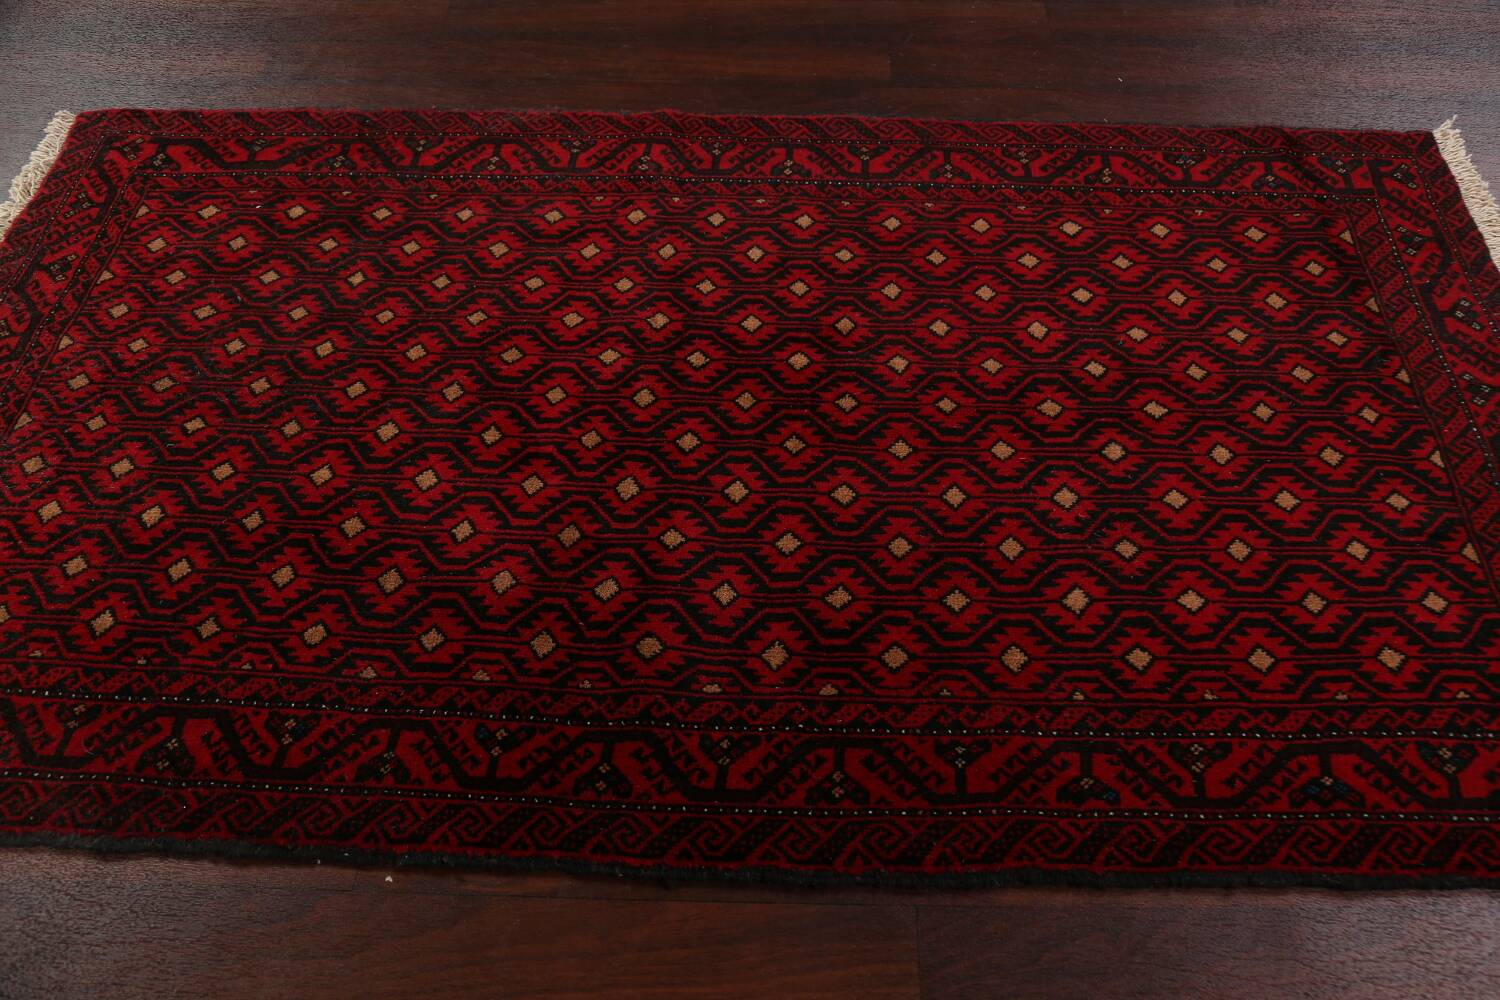 All-Over Geometric Balouch Afghan Oriental Area Rug 4x7 image 12